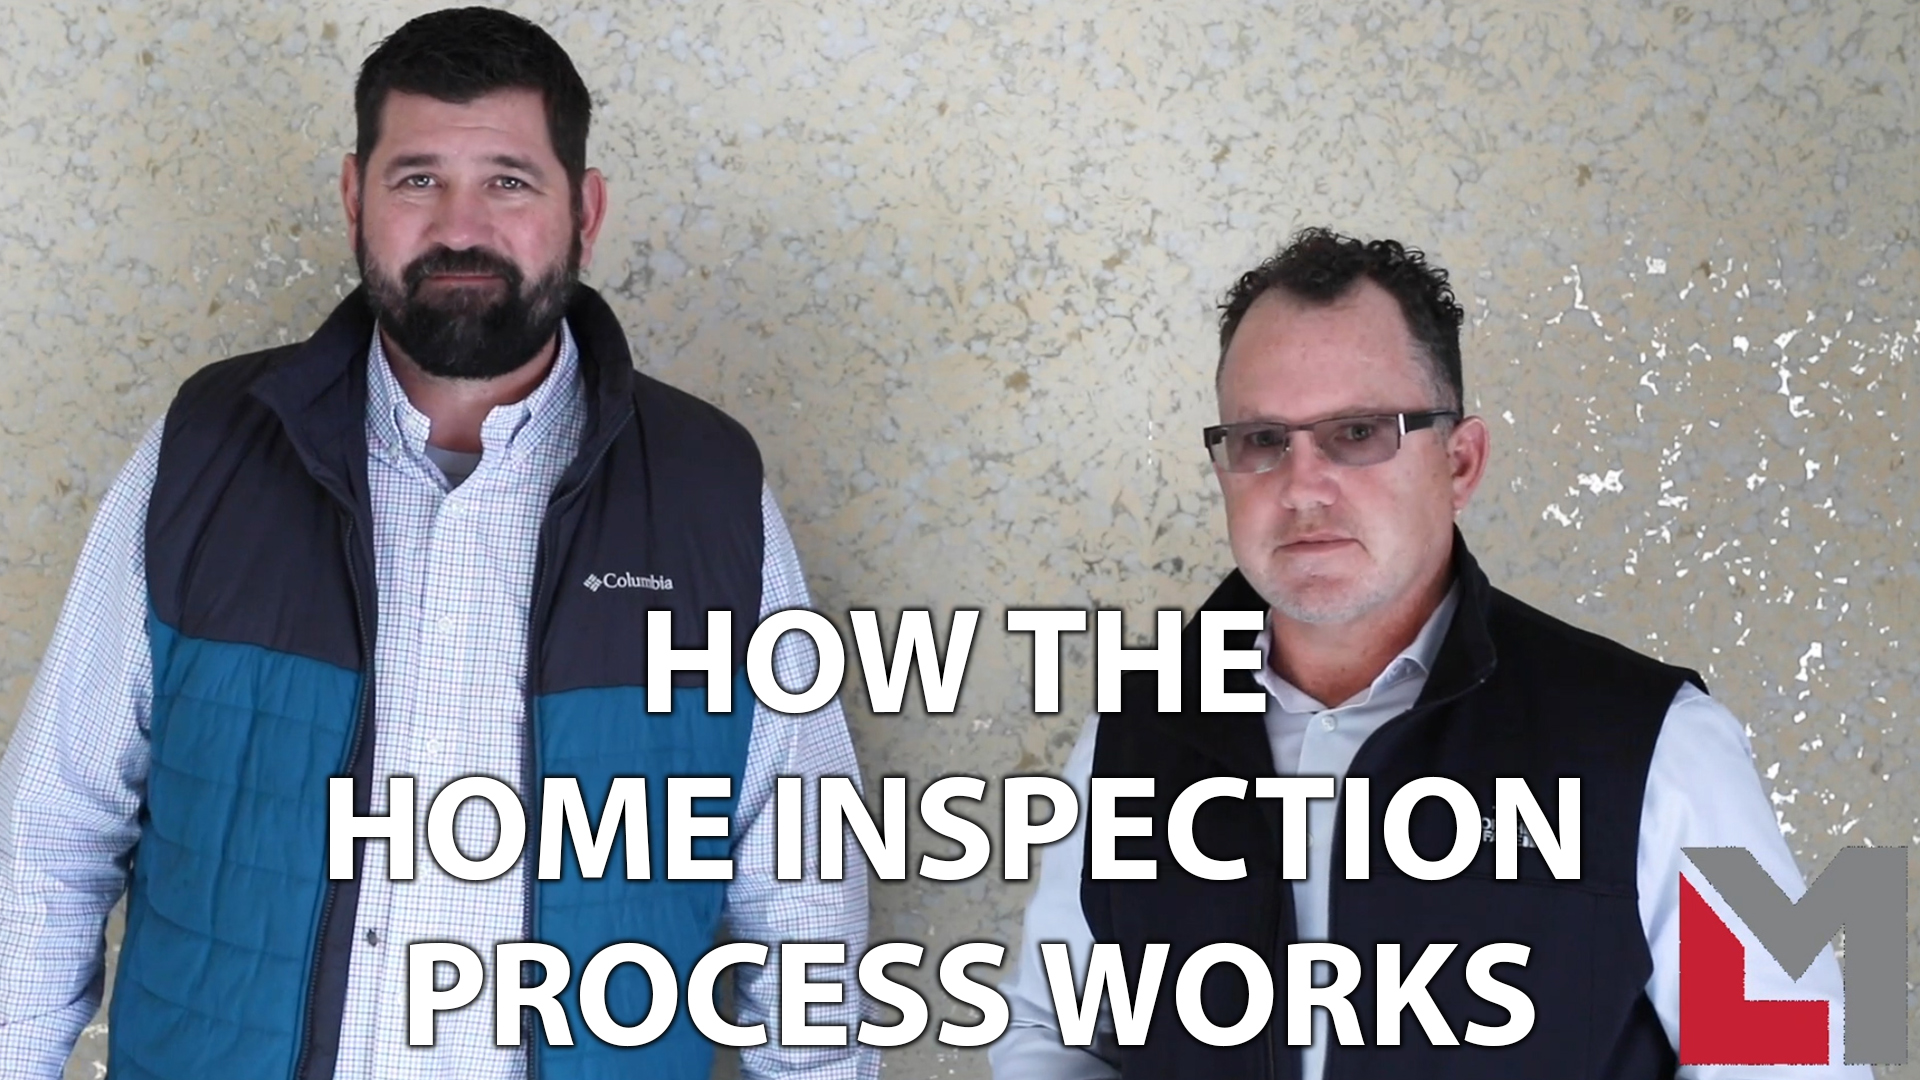 What Happens When You Get a Home Inspection